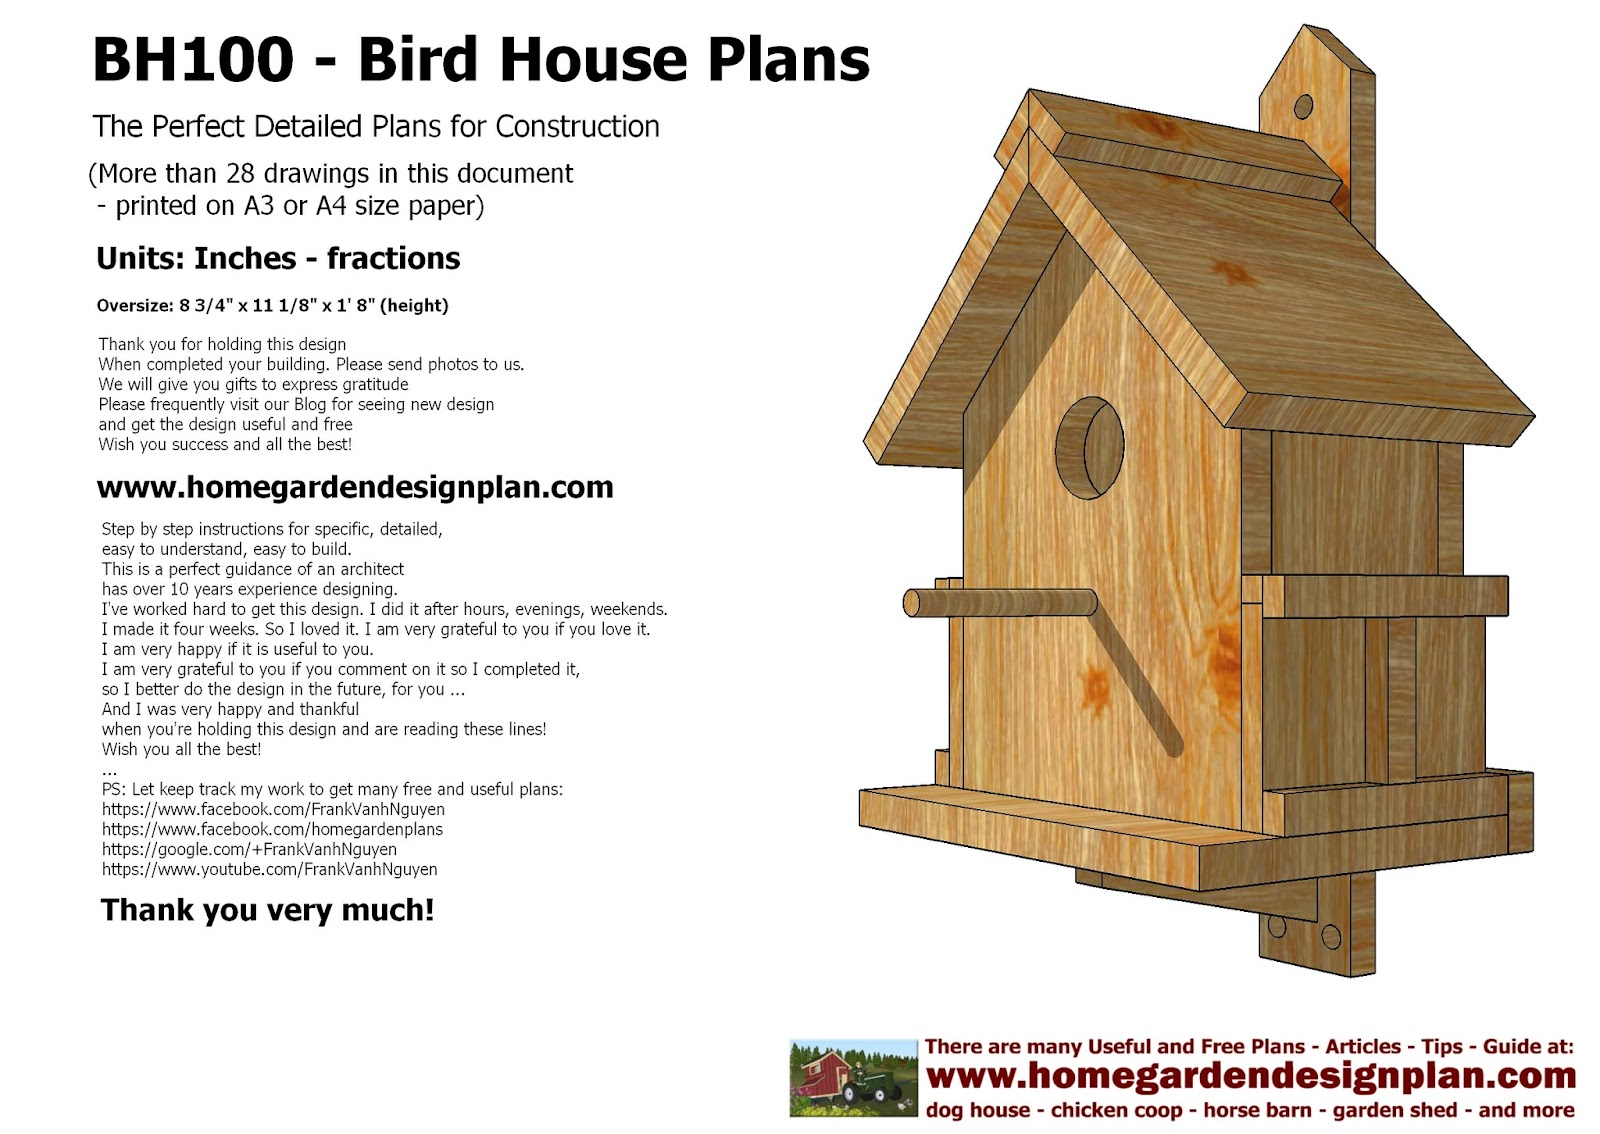 Birdhouse Design Ideas architectural sophisticated birdhouses ...